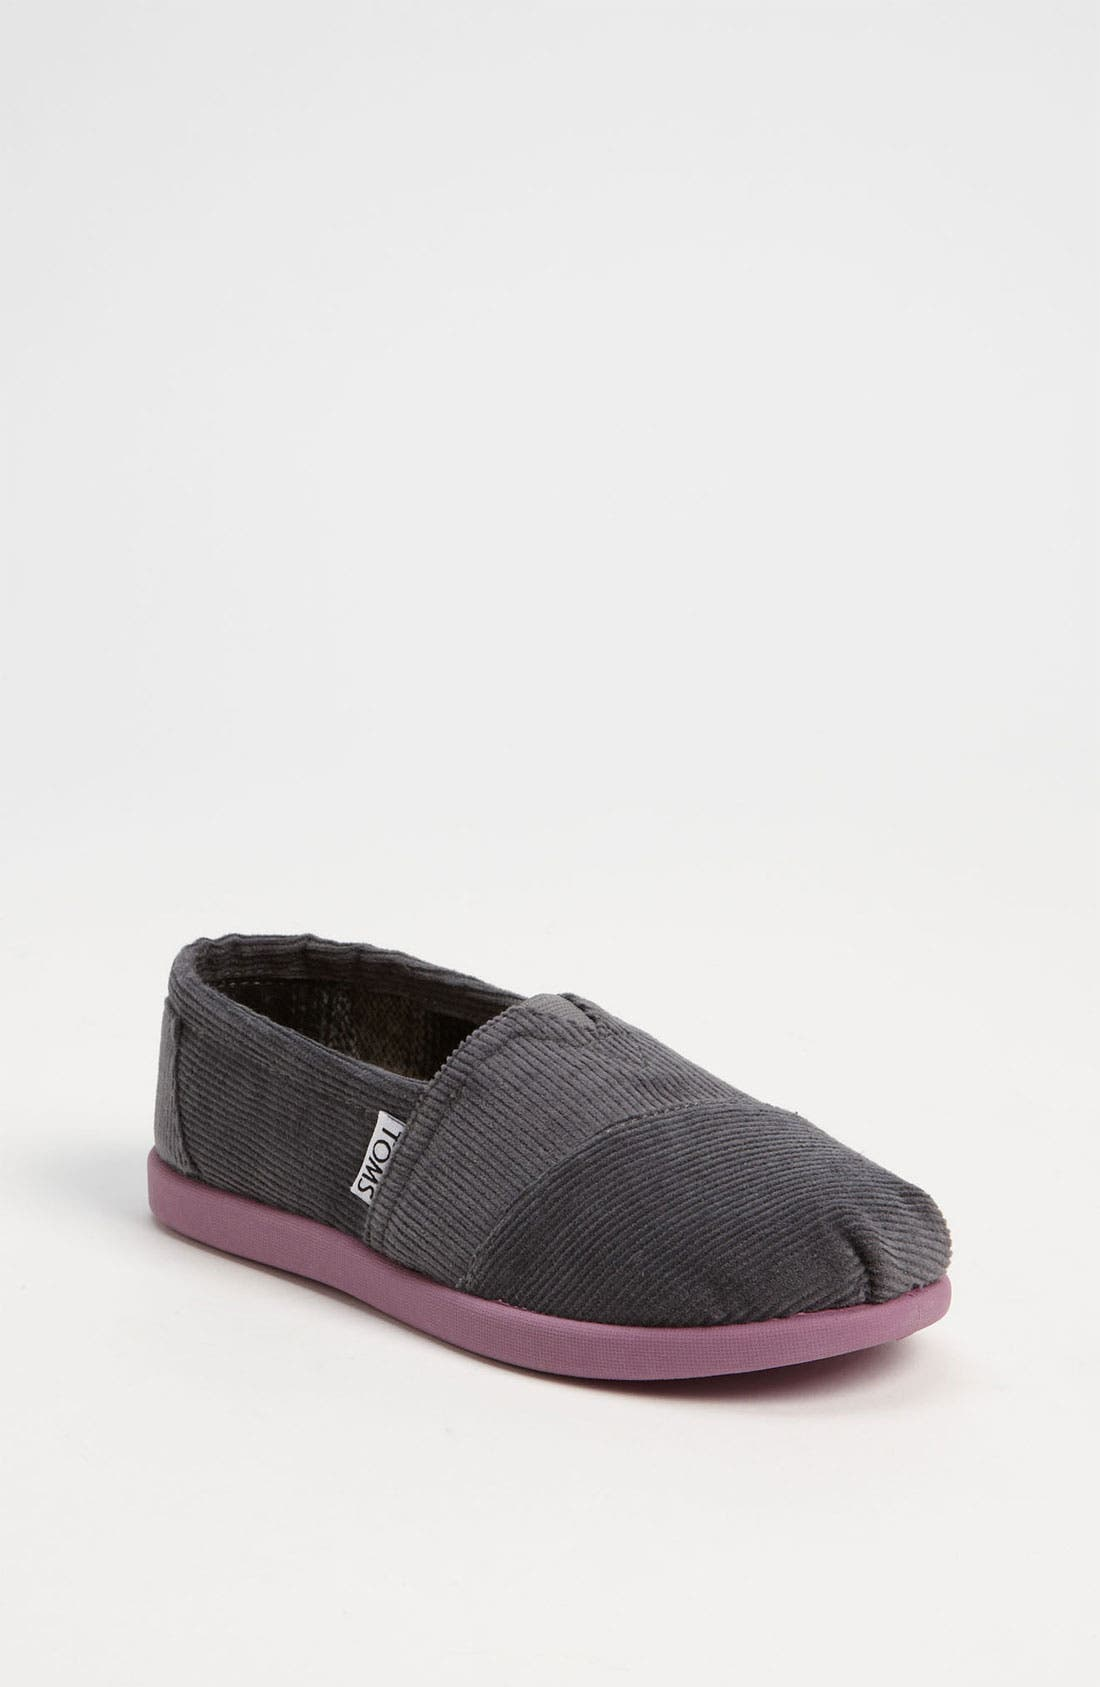 Alternate Image 1 Selected - TOMS 'Classic' Corduroy Slip-On (Toddler, Little Kid & Big Kid)